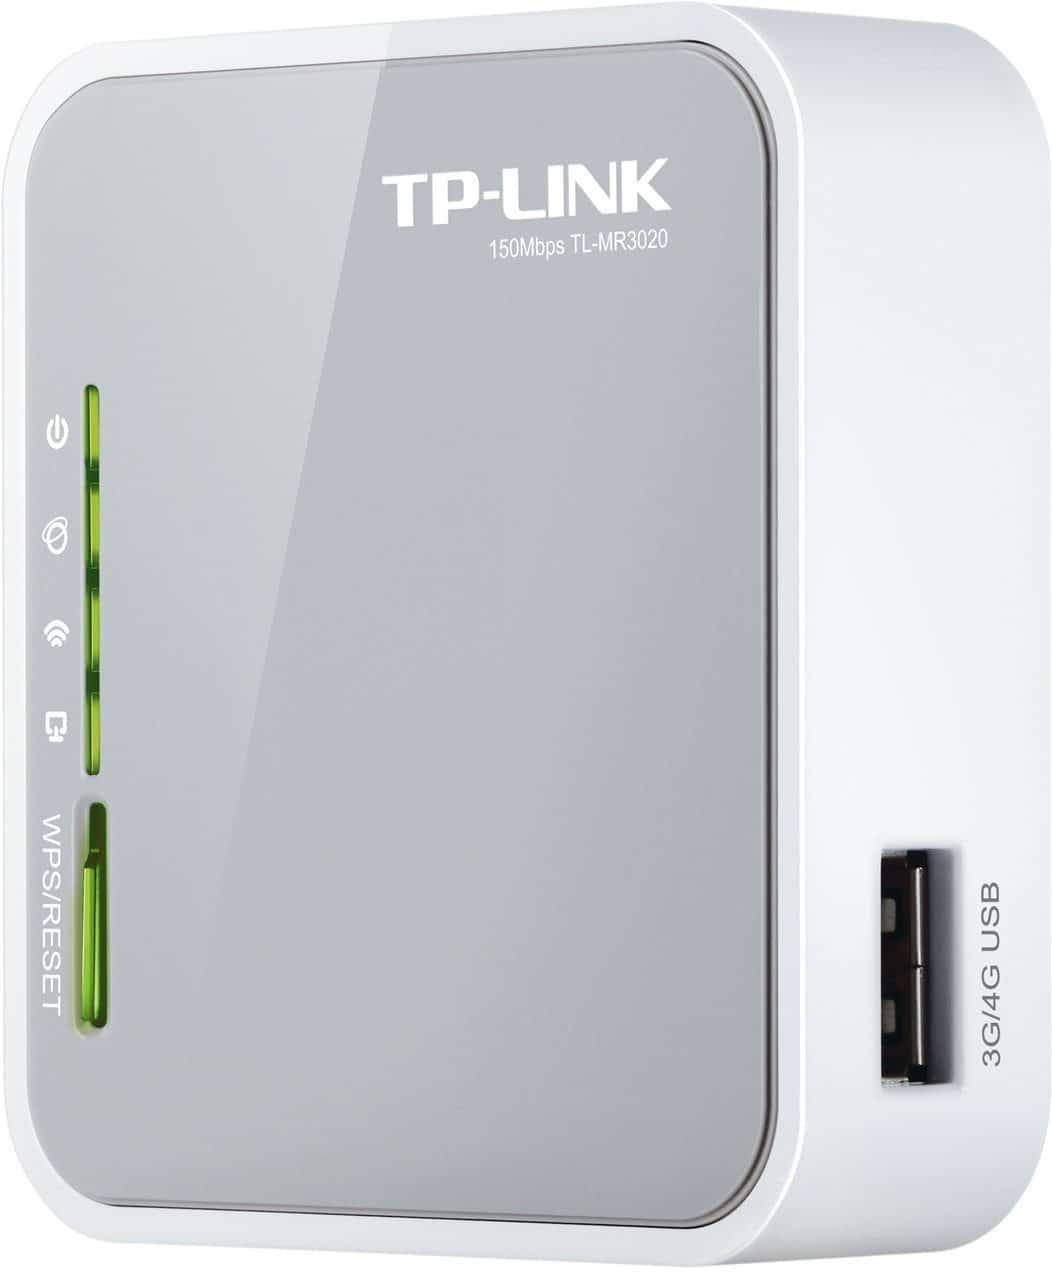 TP-Link N150 Wireless Nano Travel Router